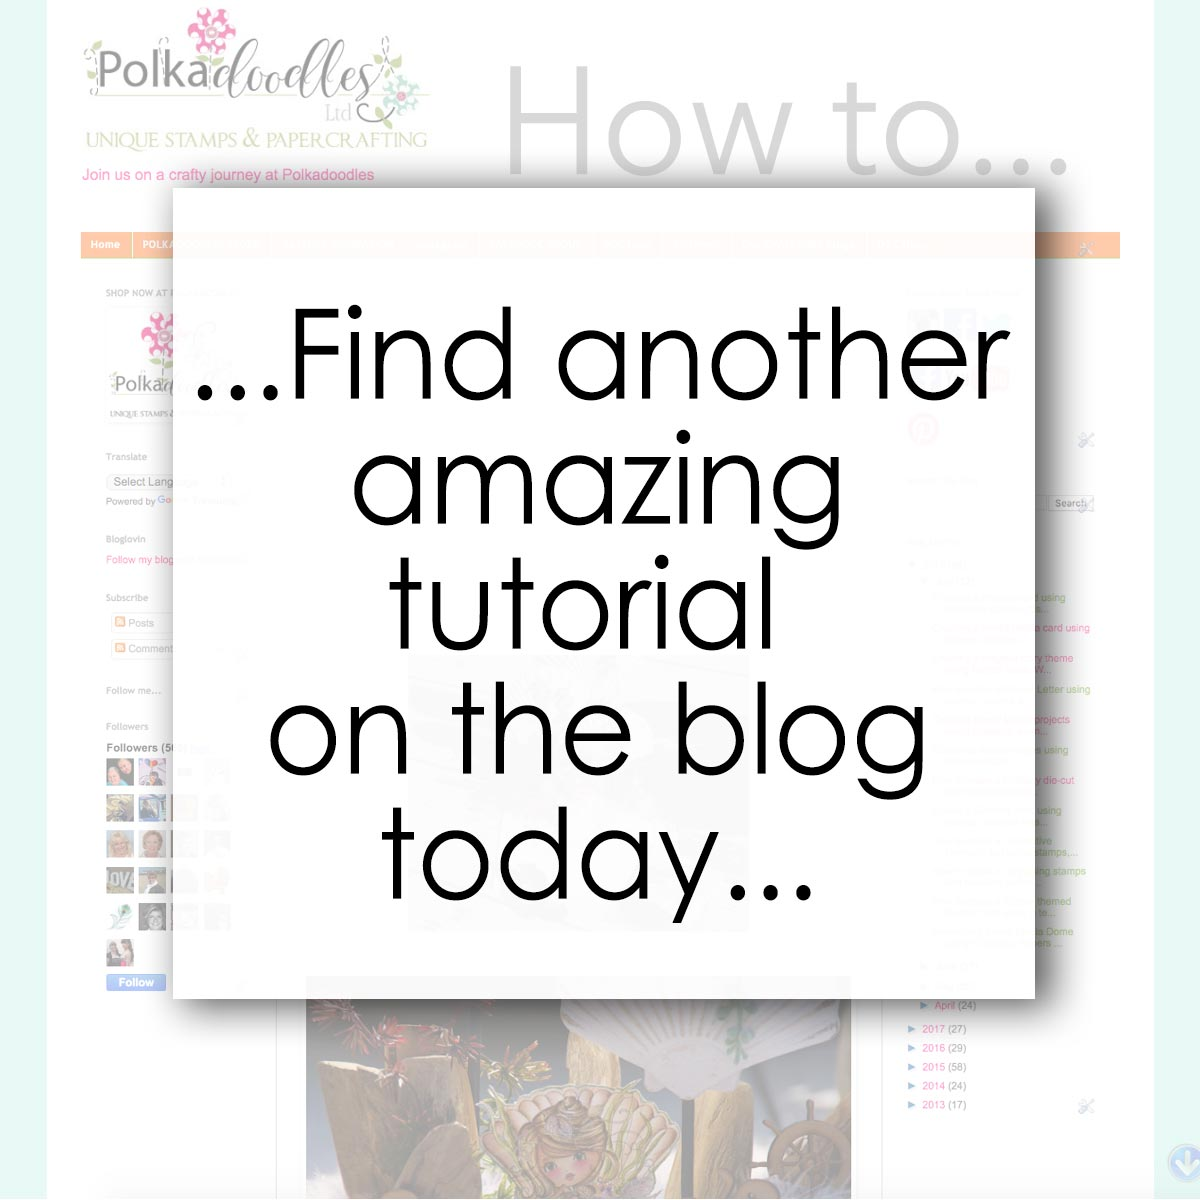 Visit the Polkadoodles blog for amazing tutorials